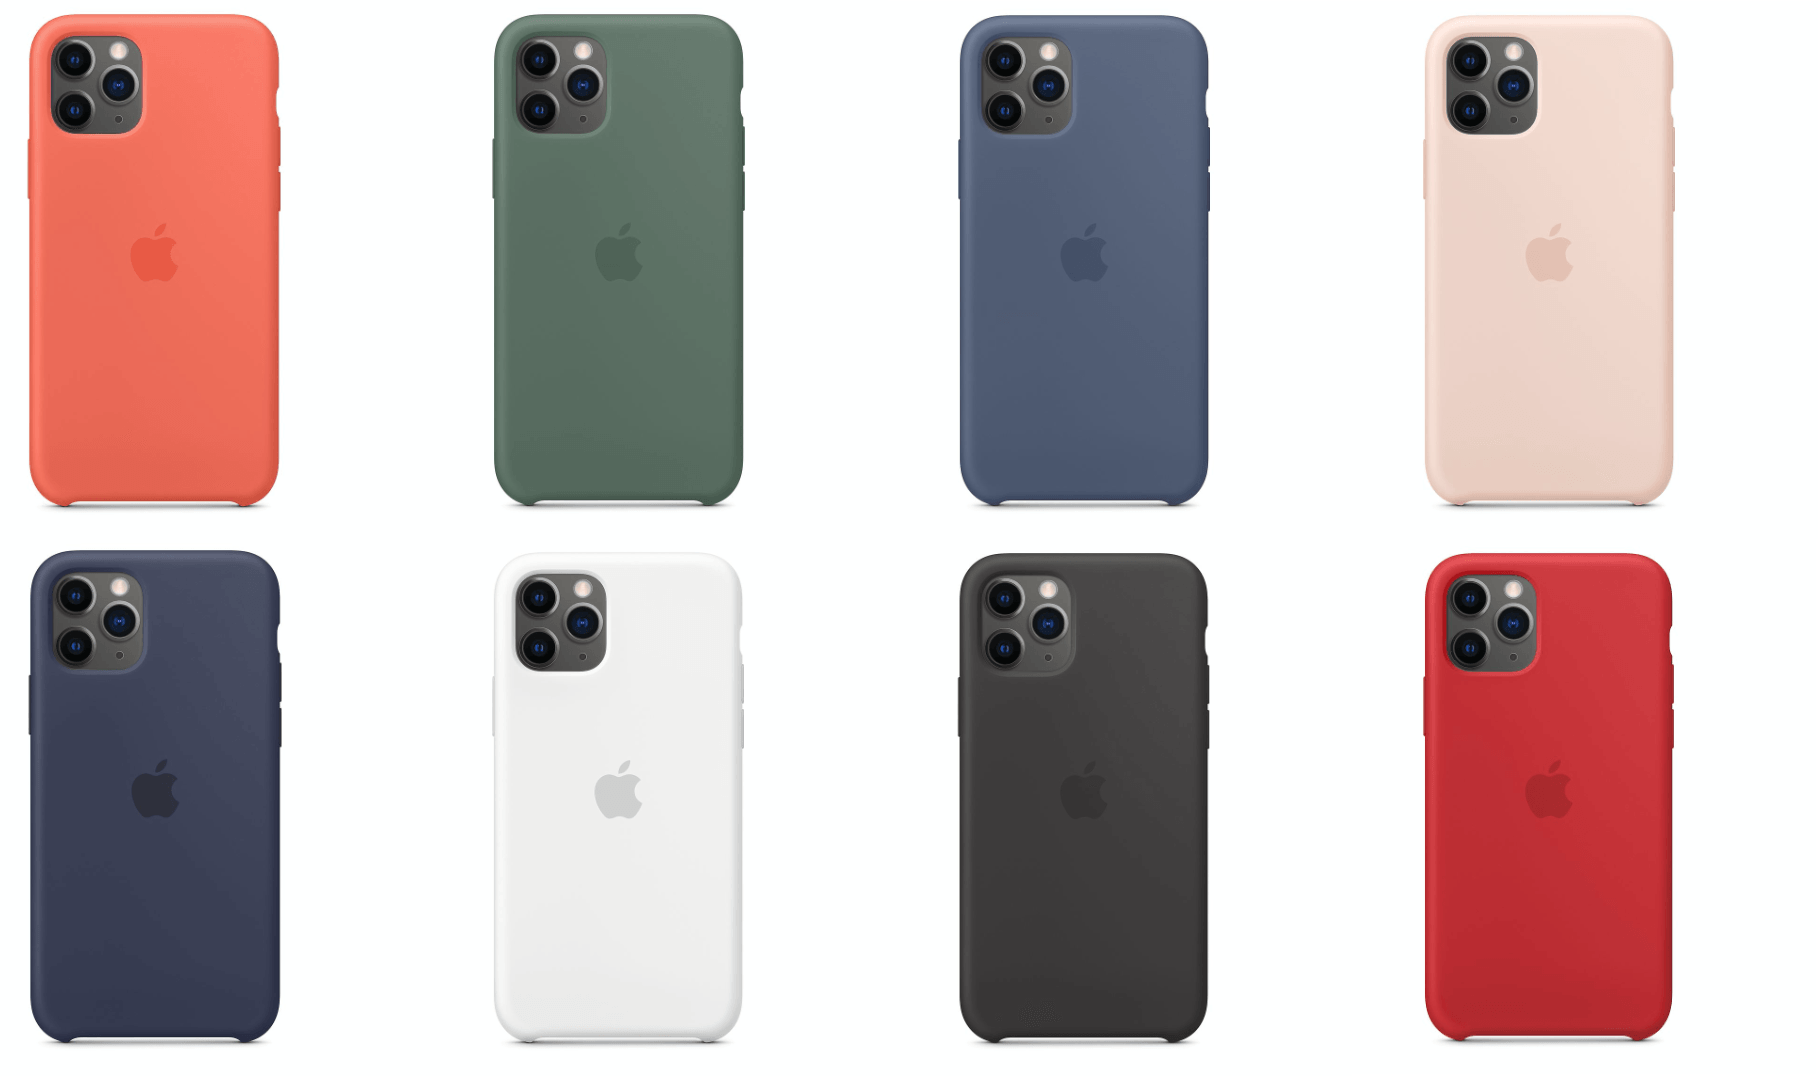 Clementine (Orange), Pine Green, Alaskan Blue, Pink Sand, Midnight Blue, White, Black, Product Red.